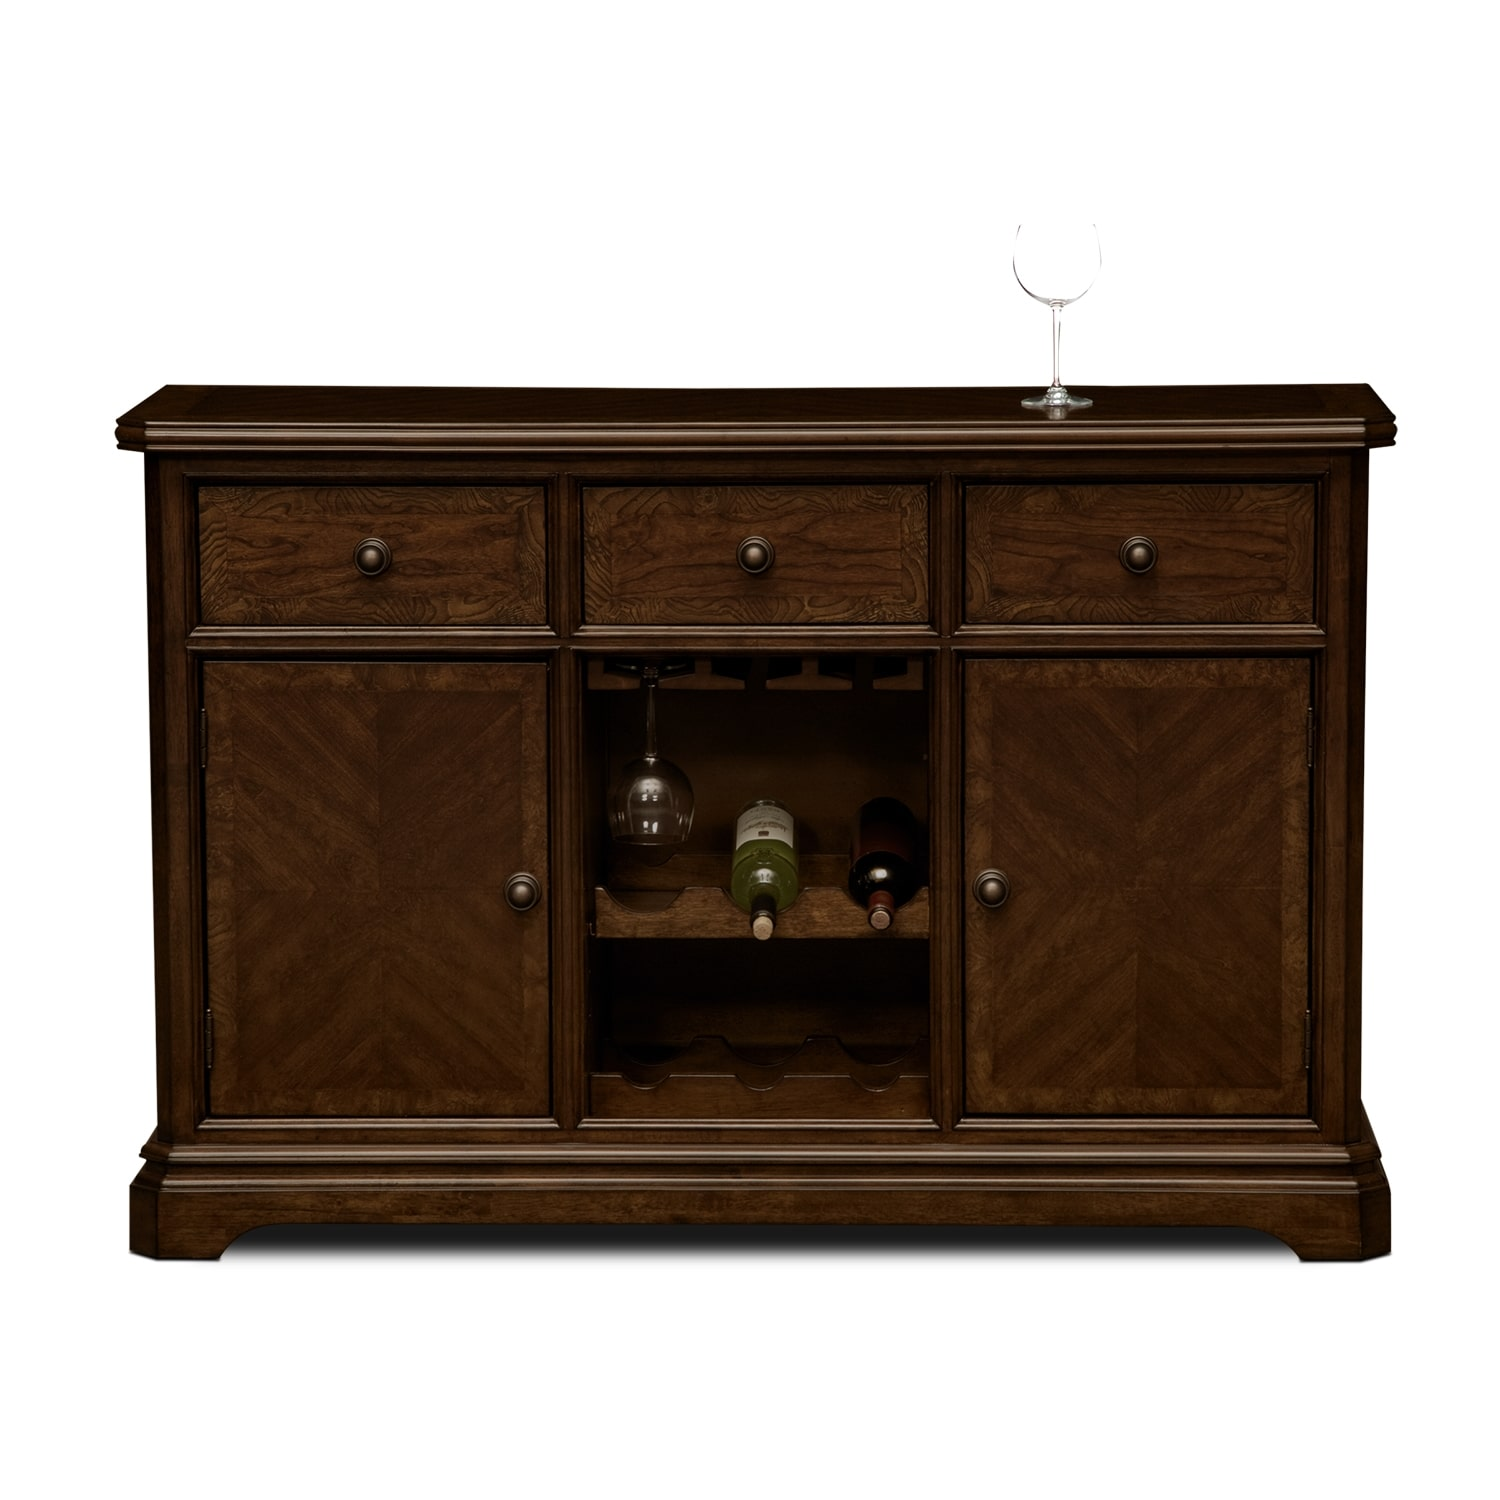 Westin dining room sideboard value city furniture for Dining room sideboard